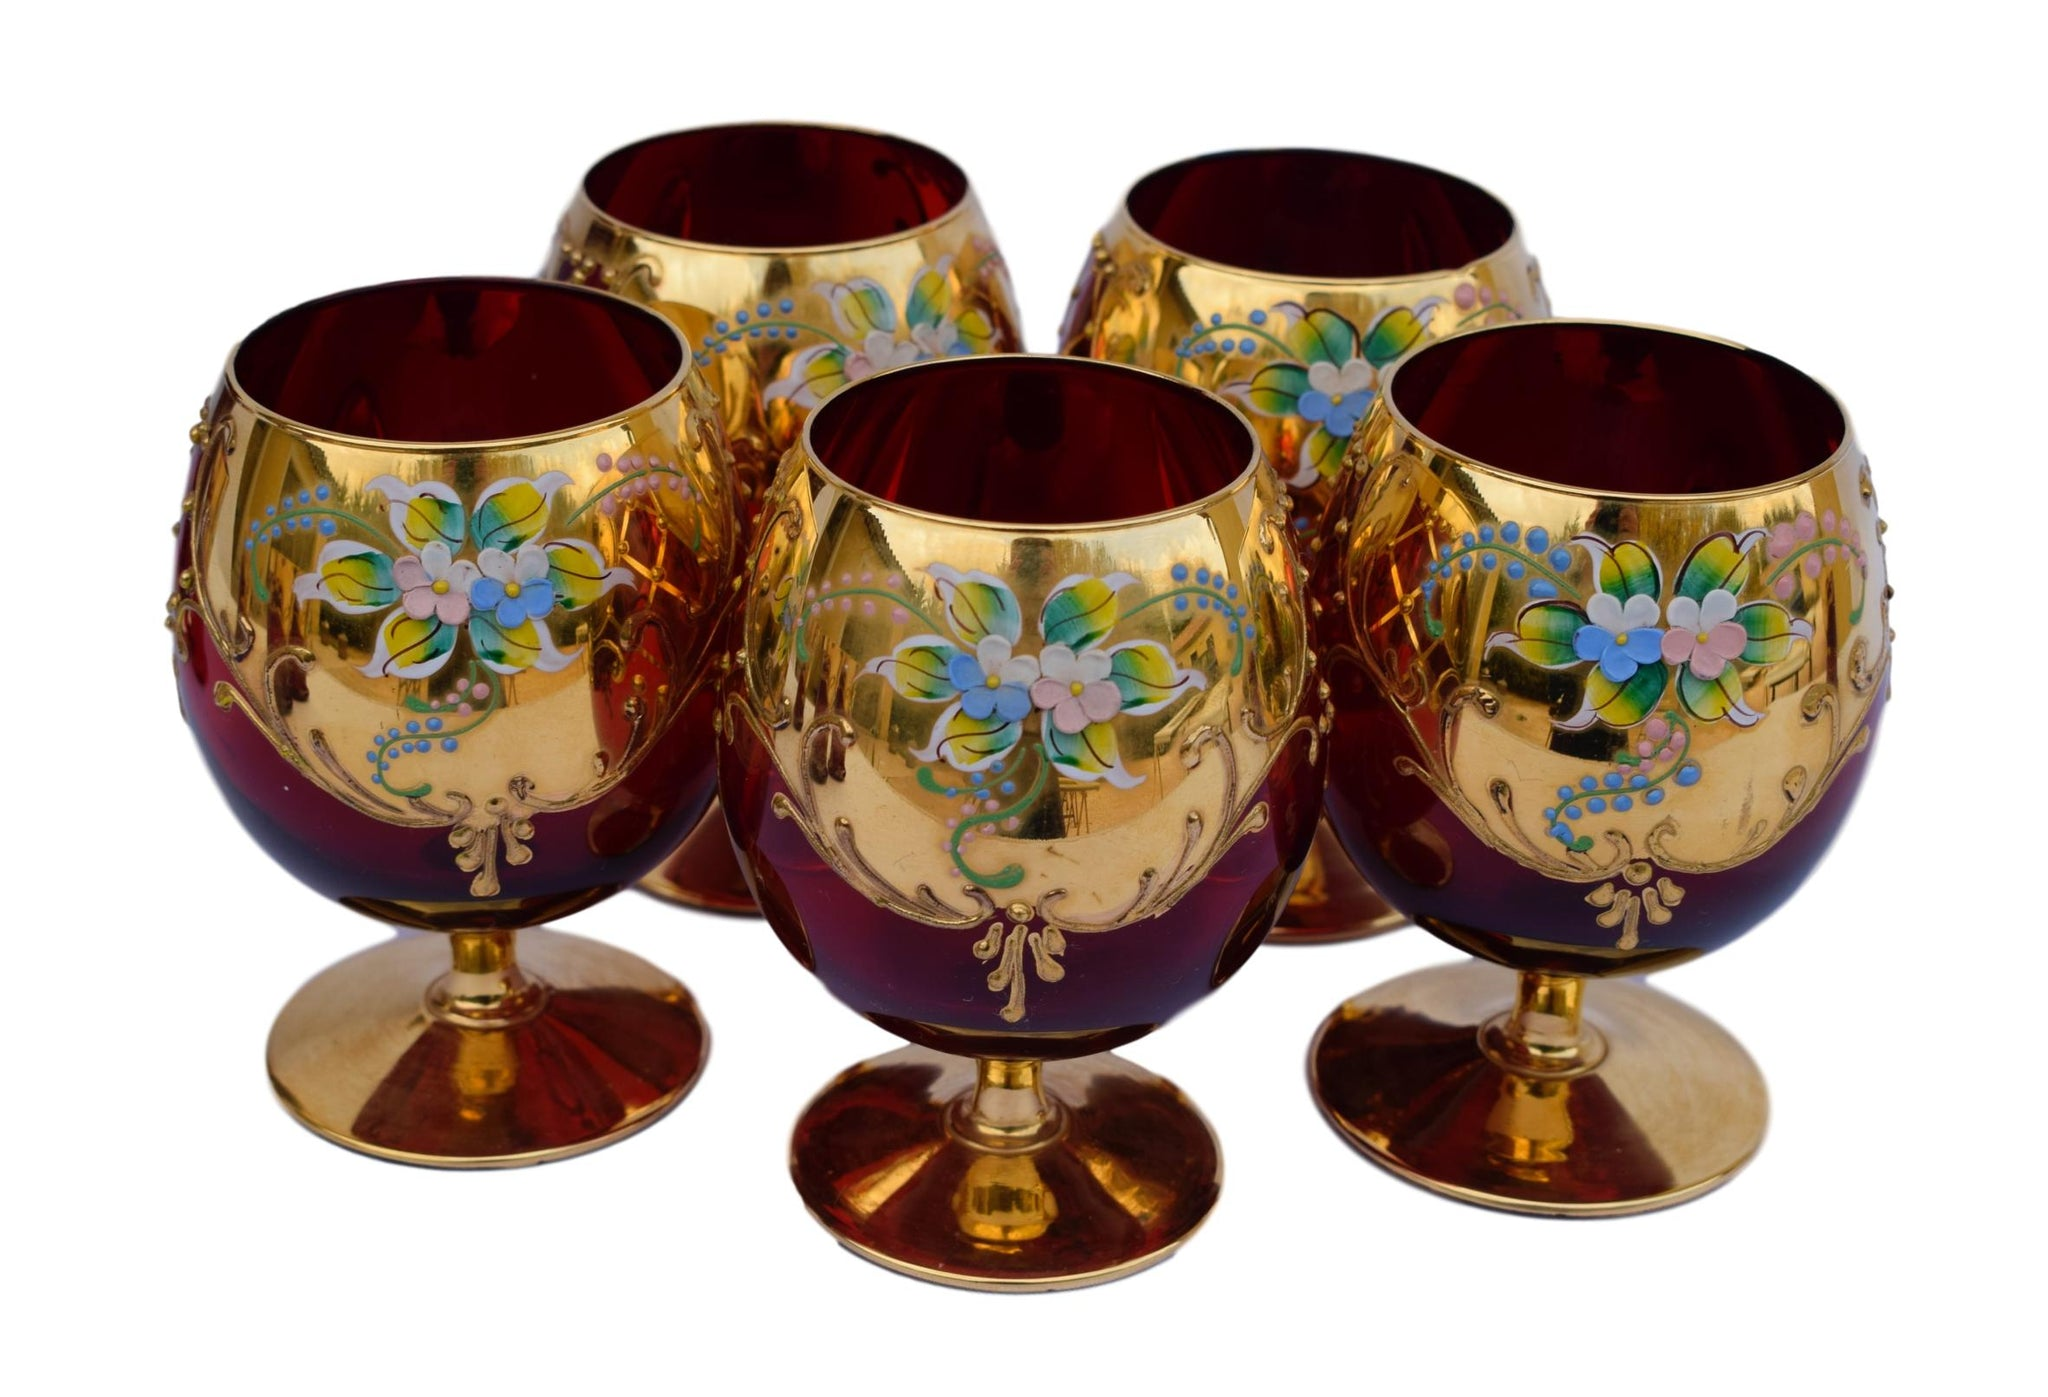 Vintage Murano Gold & Ruby Venetian Glass Brandy and Liquor Goblets Decanter Set - Hand Painted Enameled Flowers Red and Gold Glass